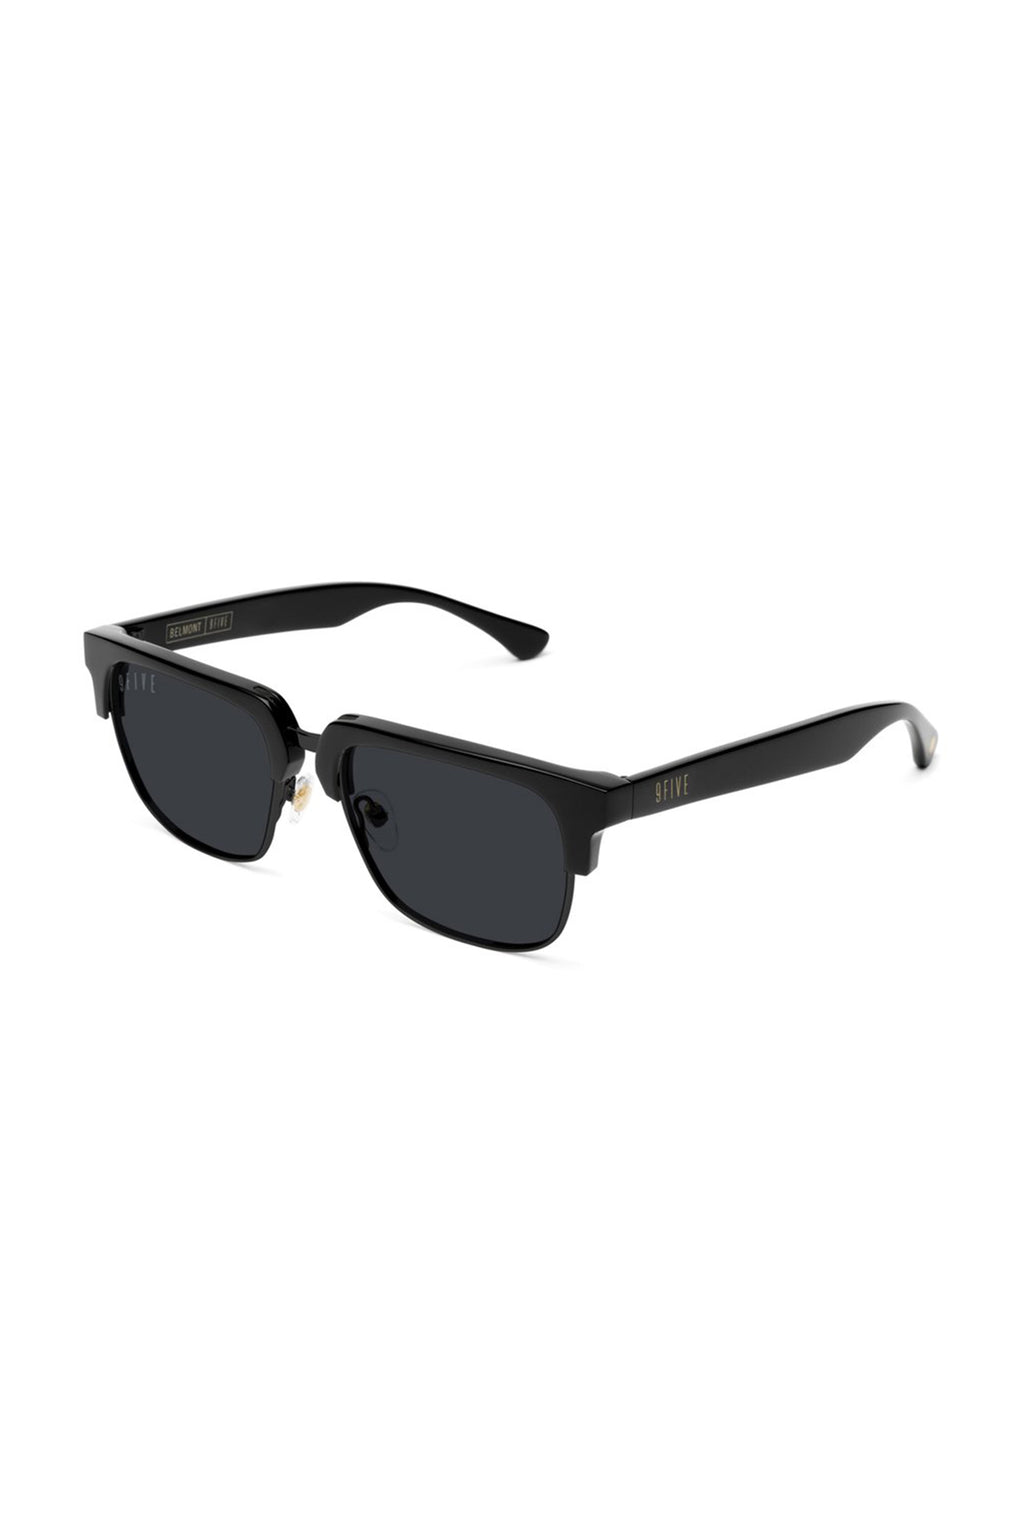 9Five Sunglasses - Belmont Matte Black